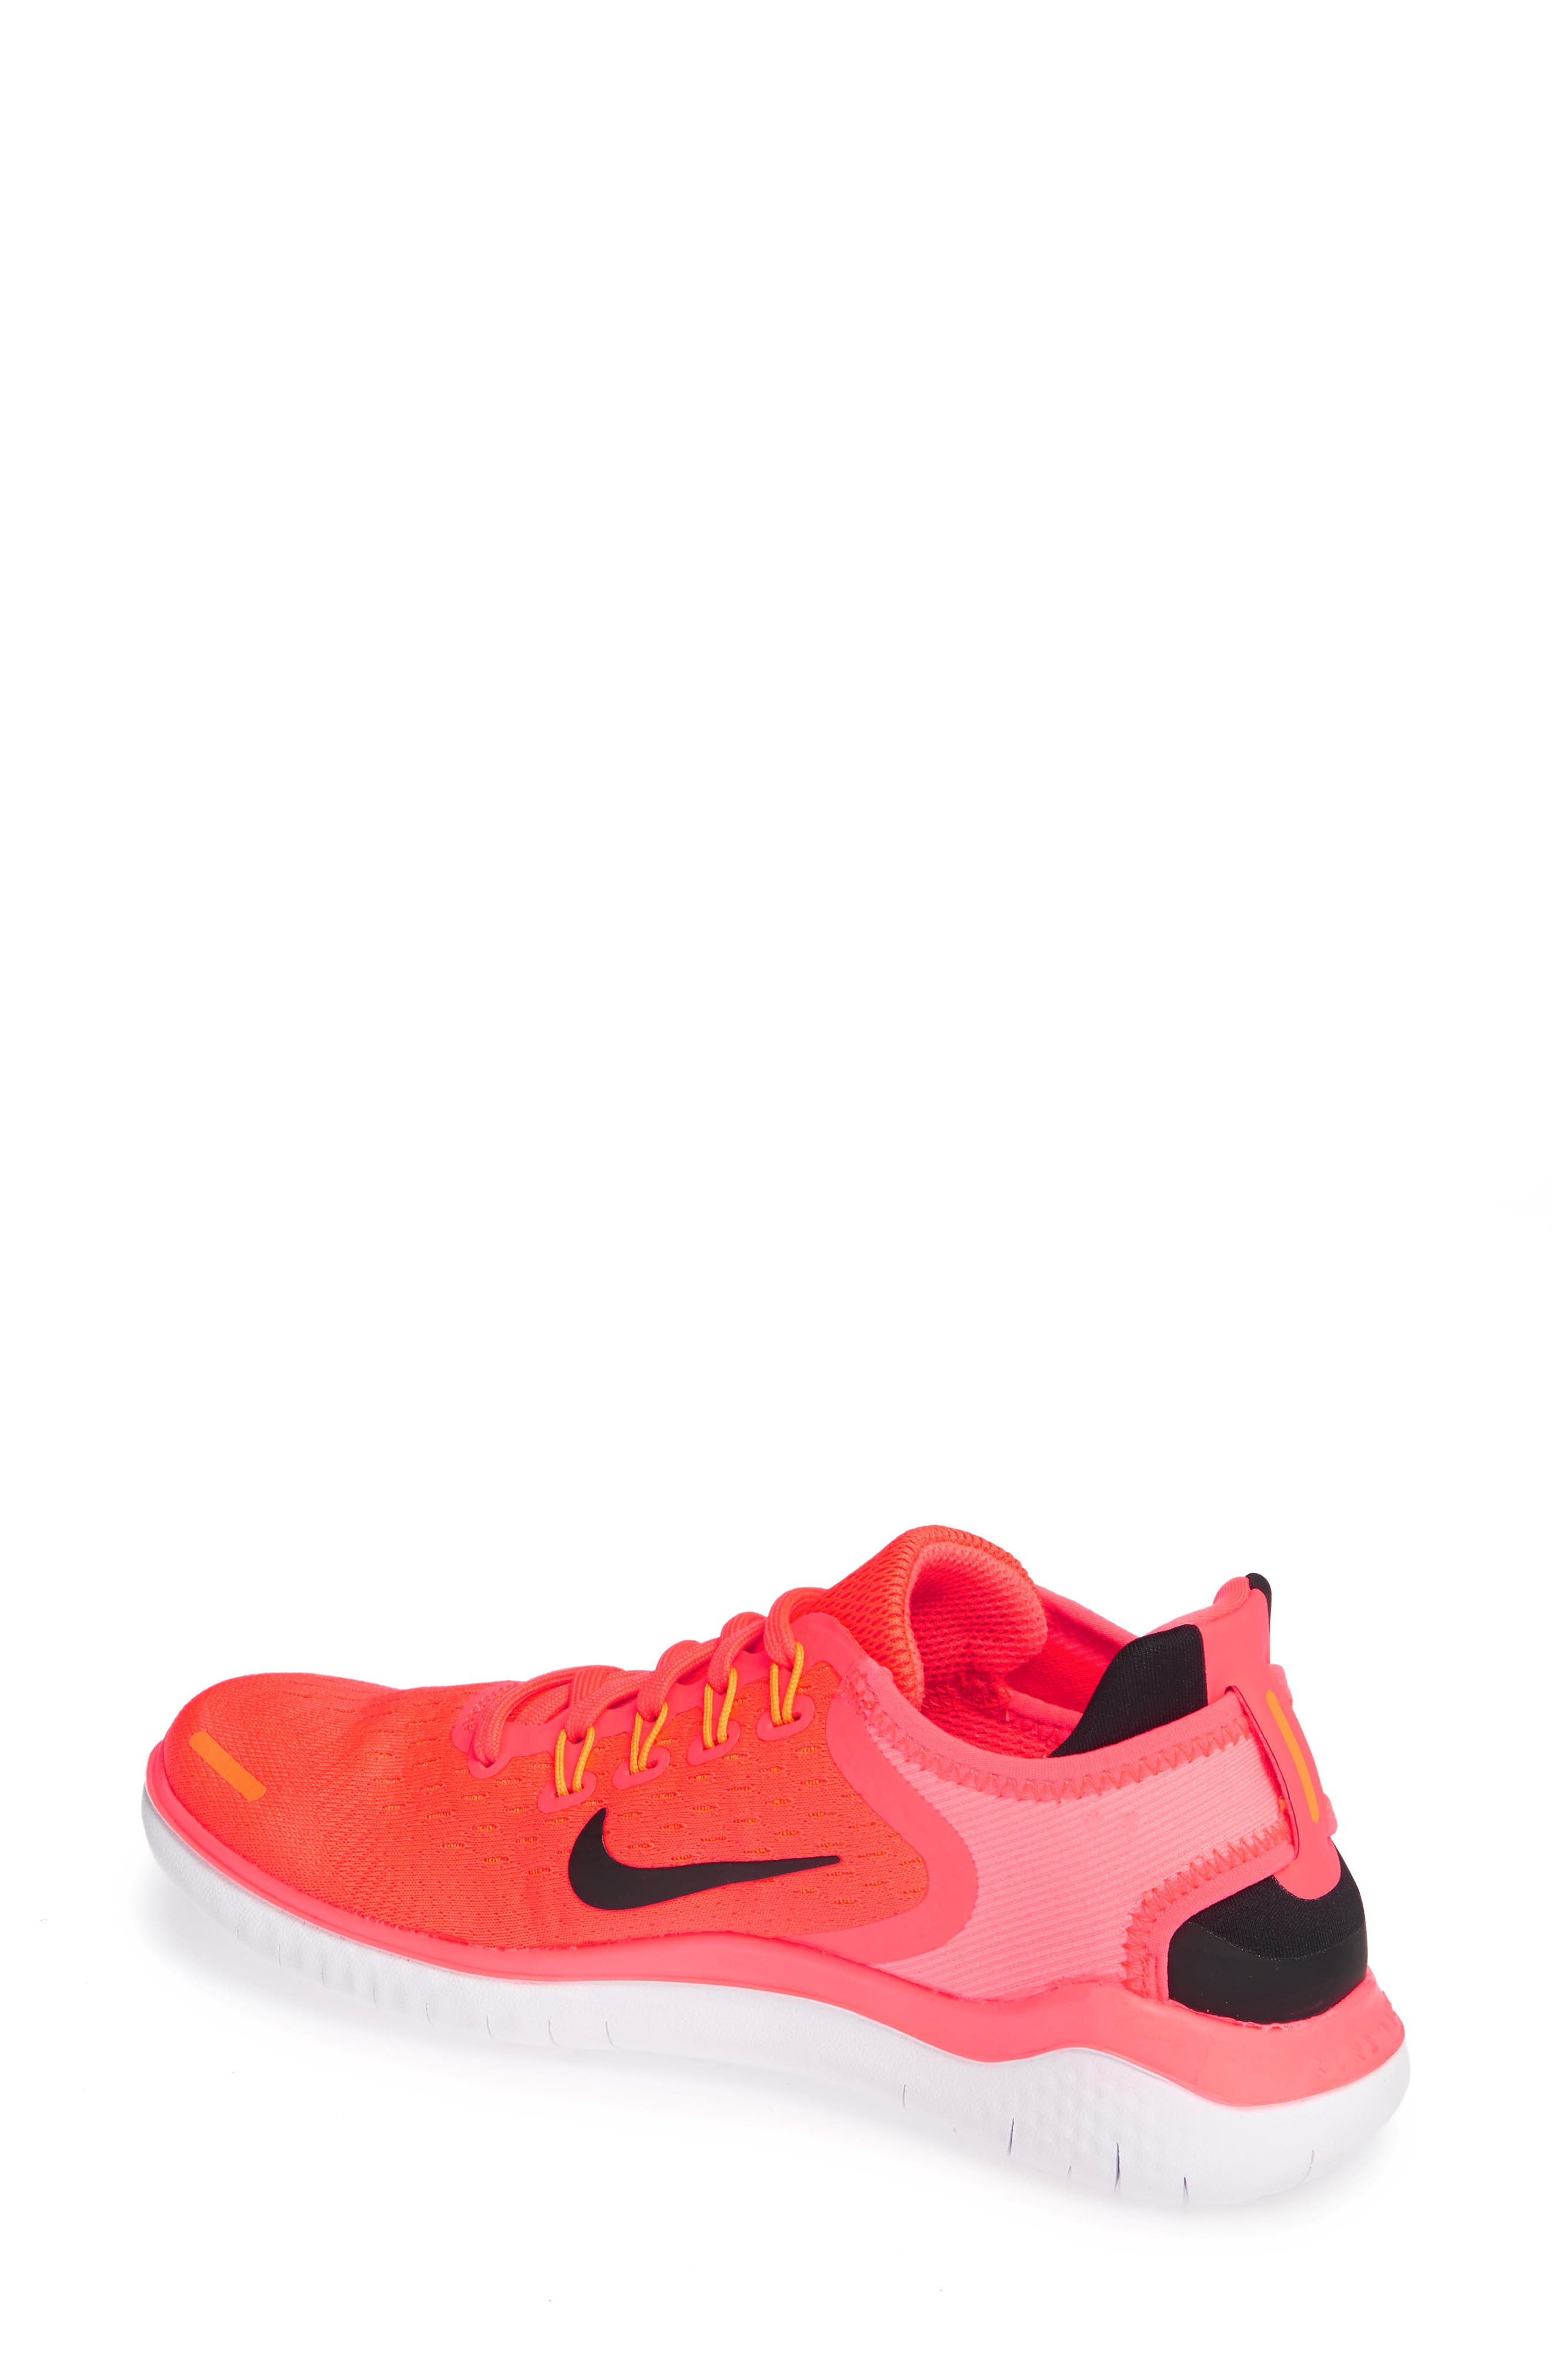 the best attitude f07b2 c44f0 Nike Free Run   Nordstrom